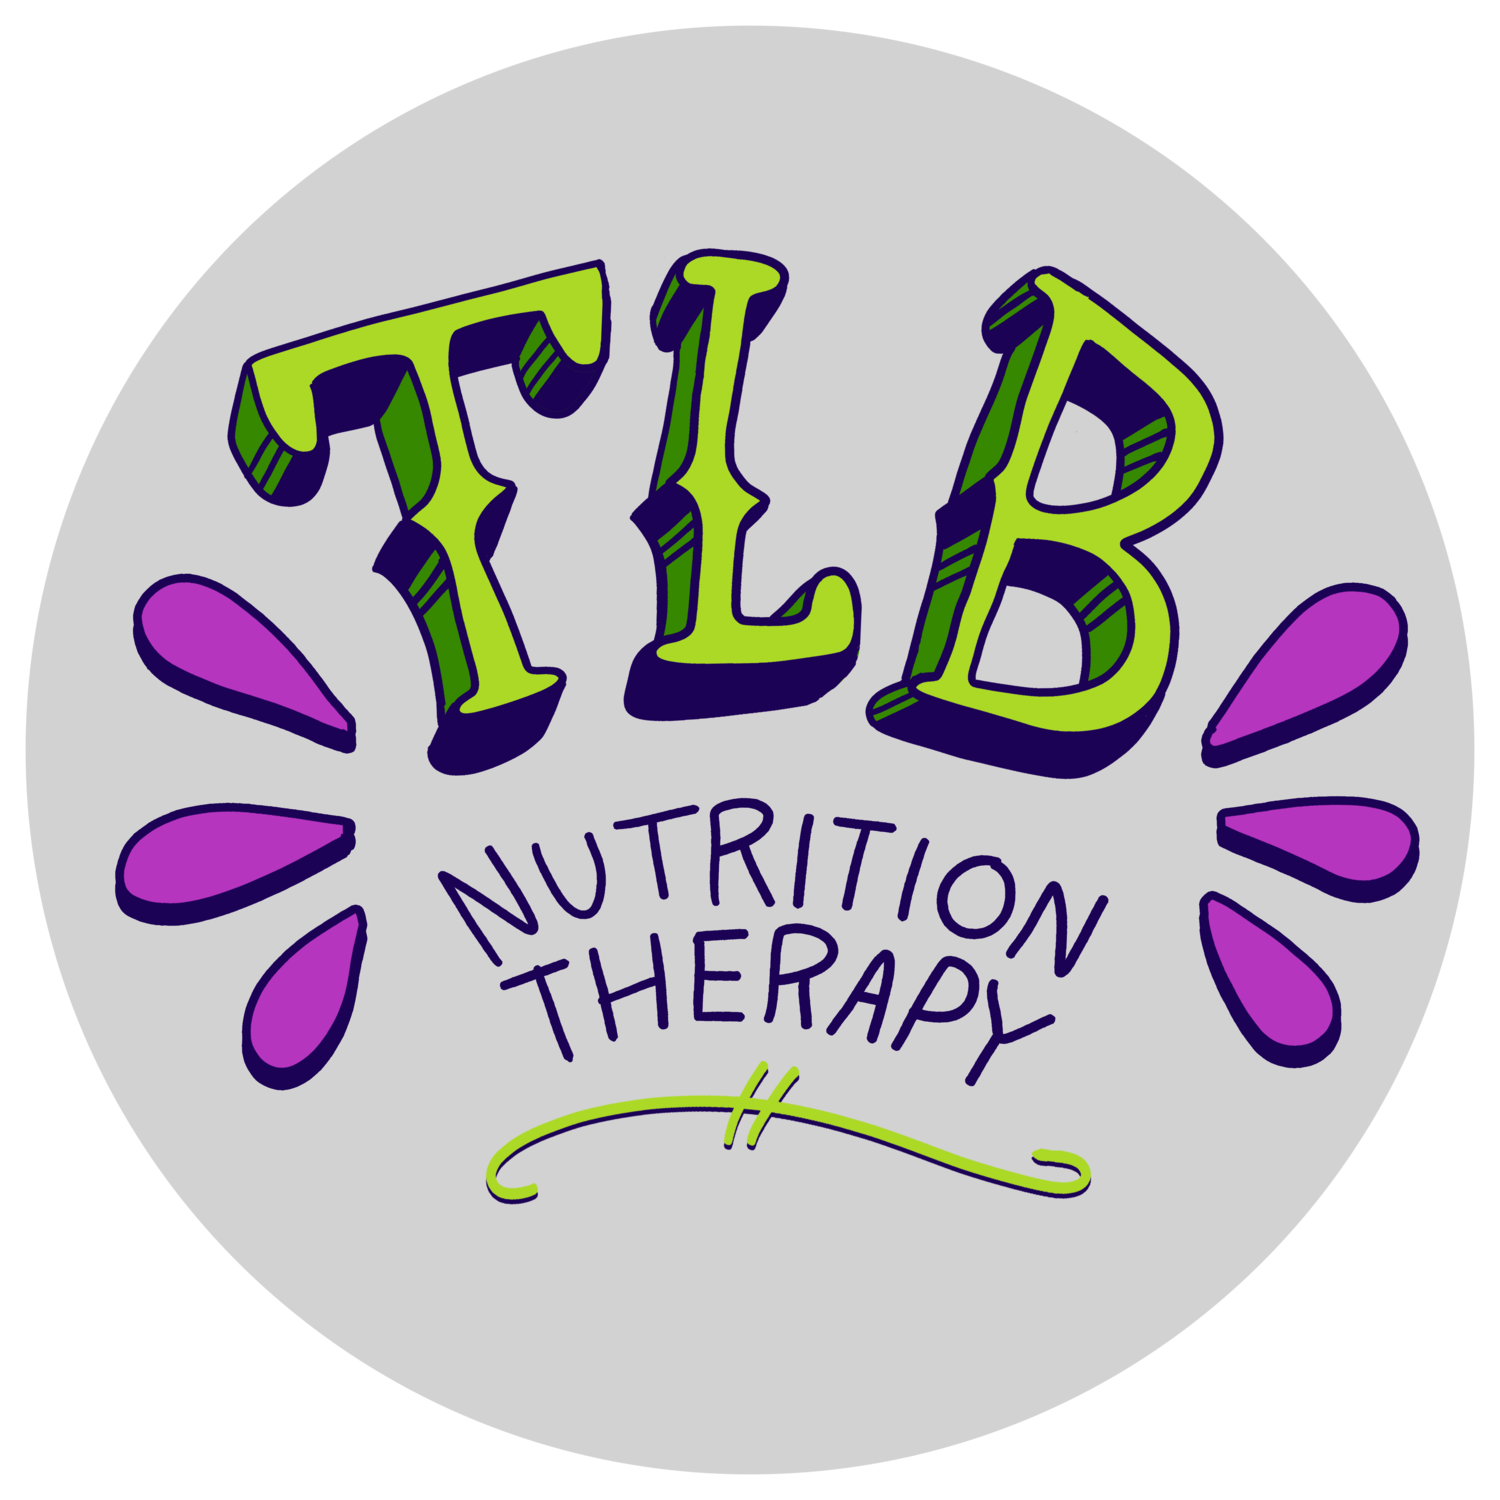 TLB NUTRITION THERAPY